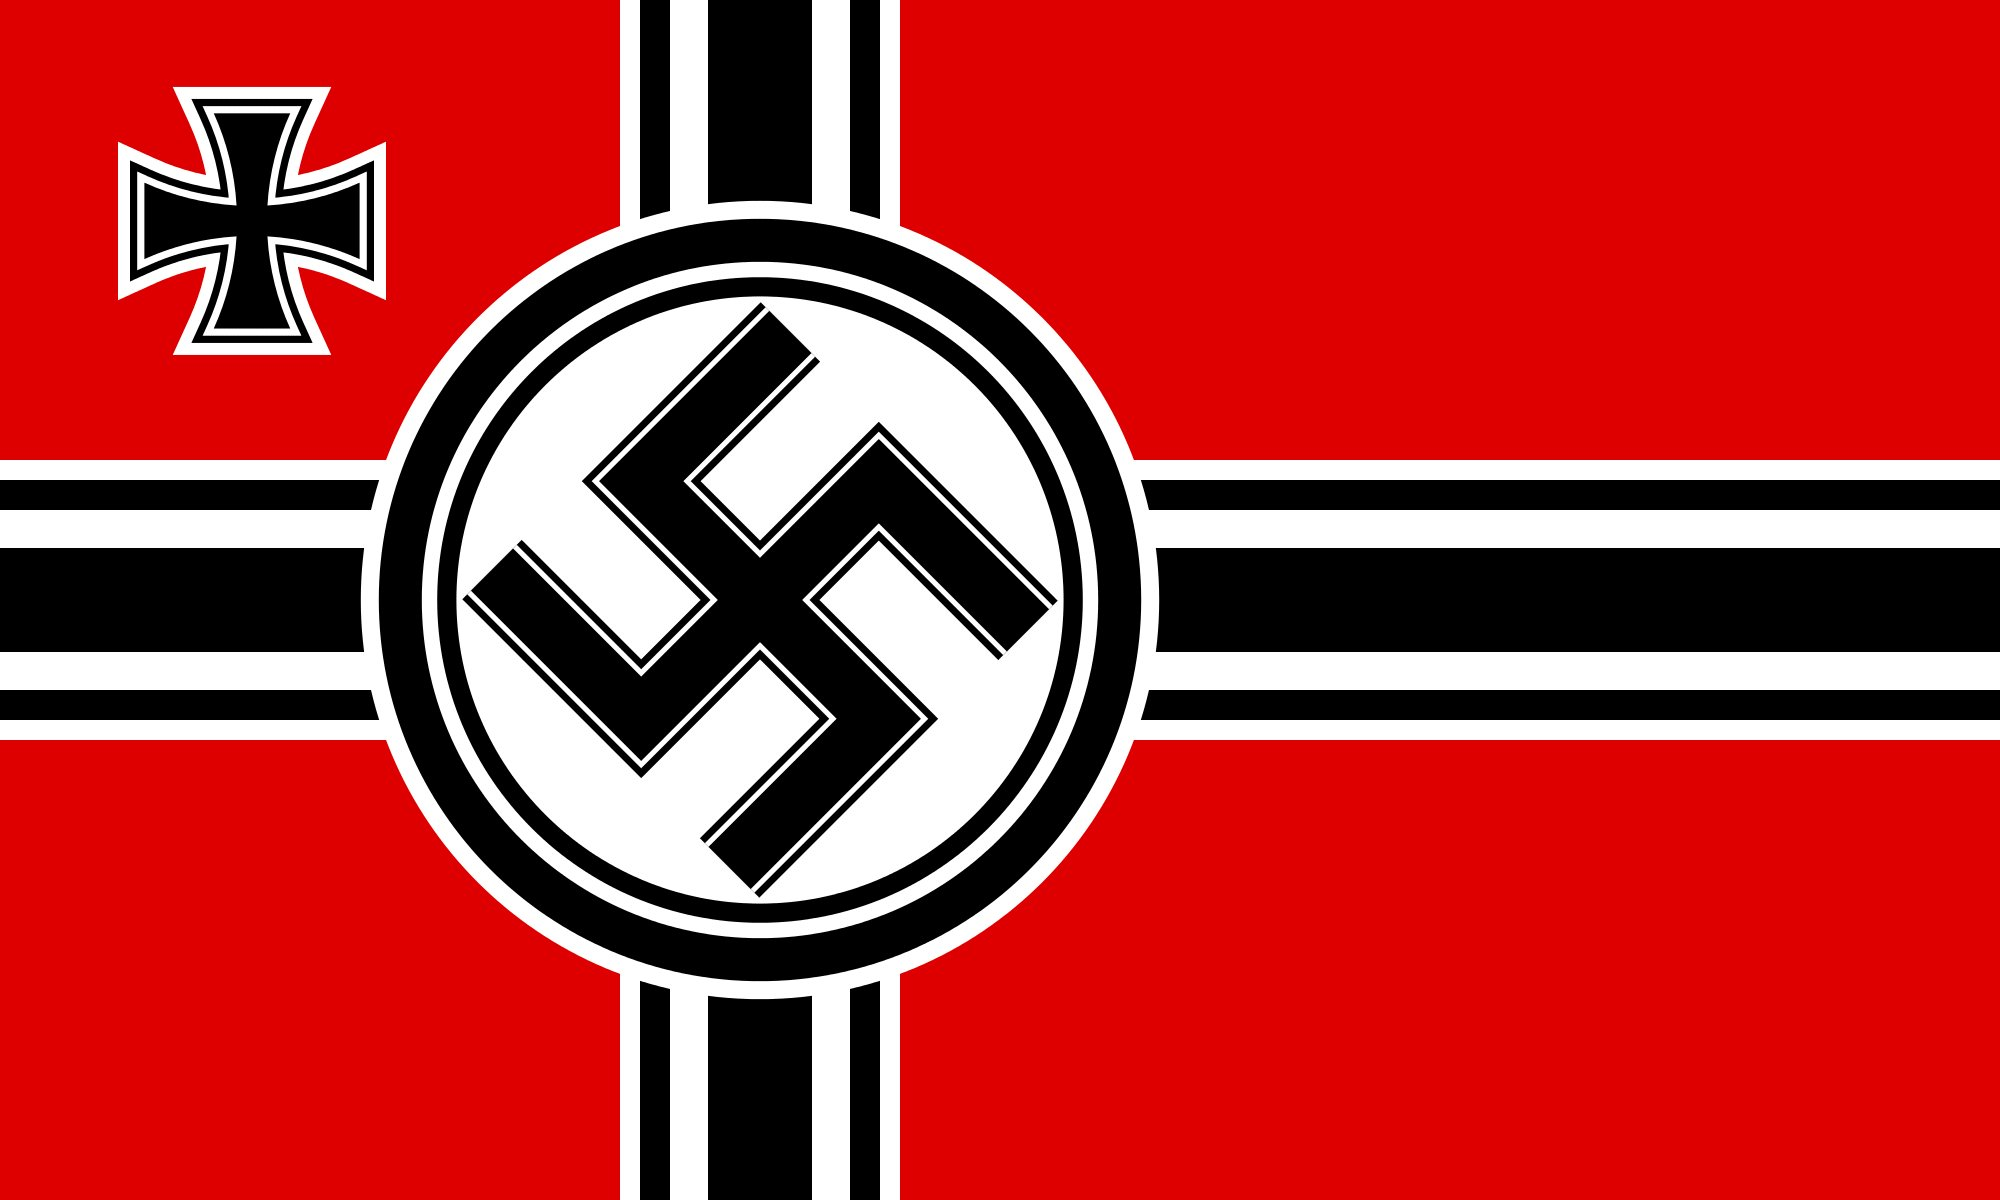 GermanWarFlag_Vista.jpg